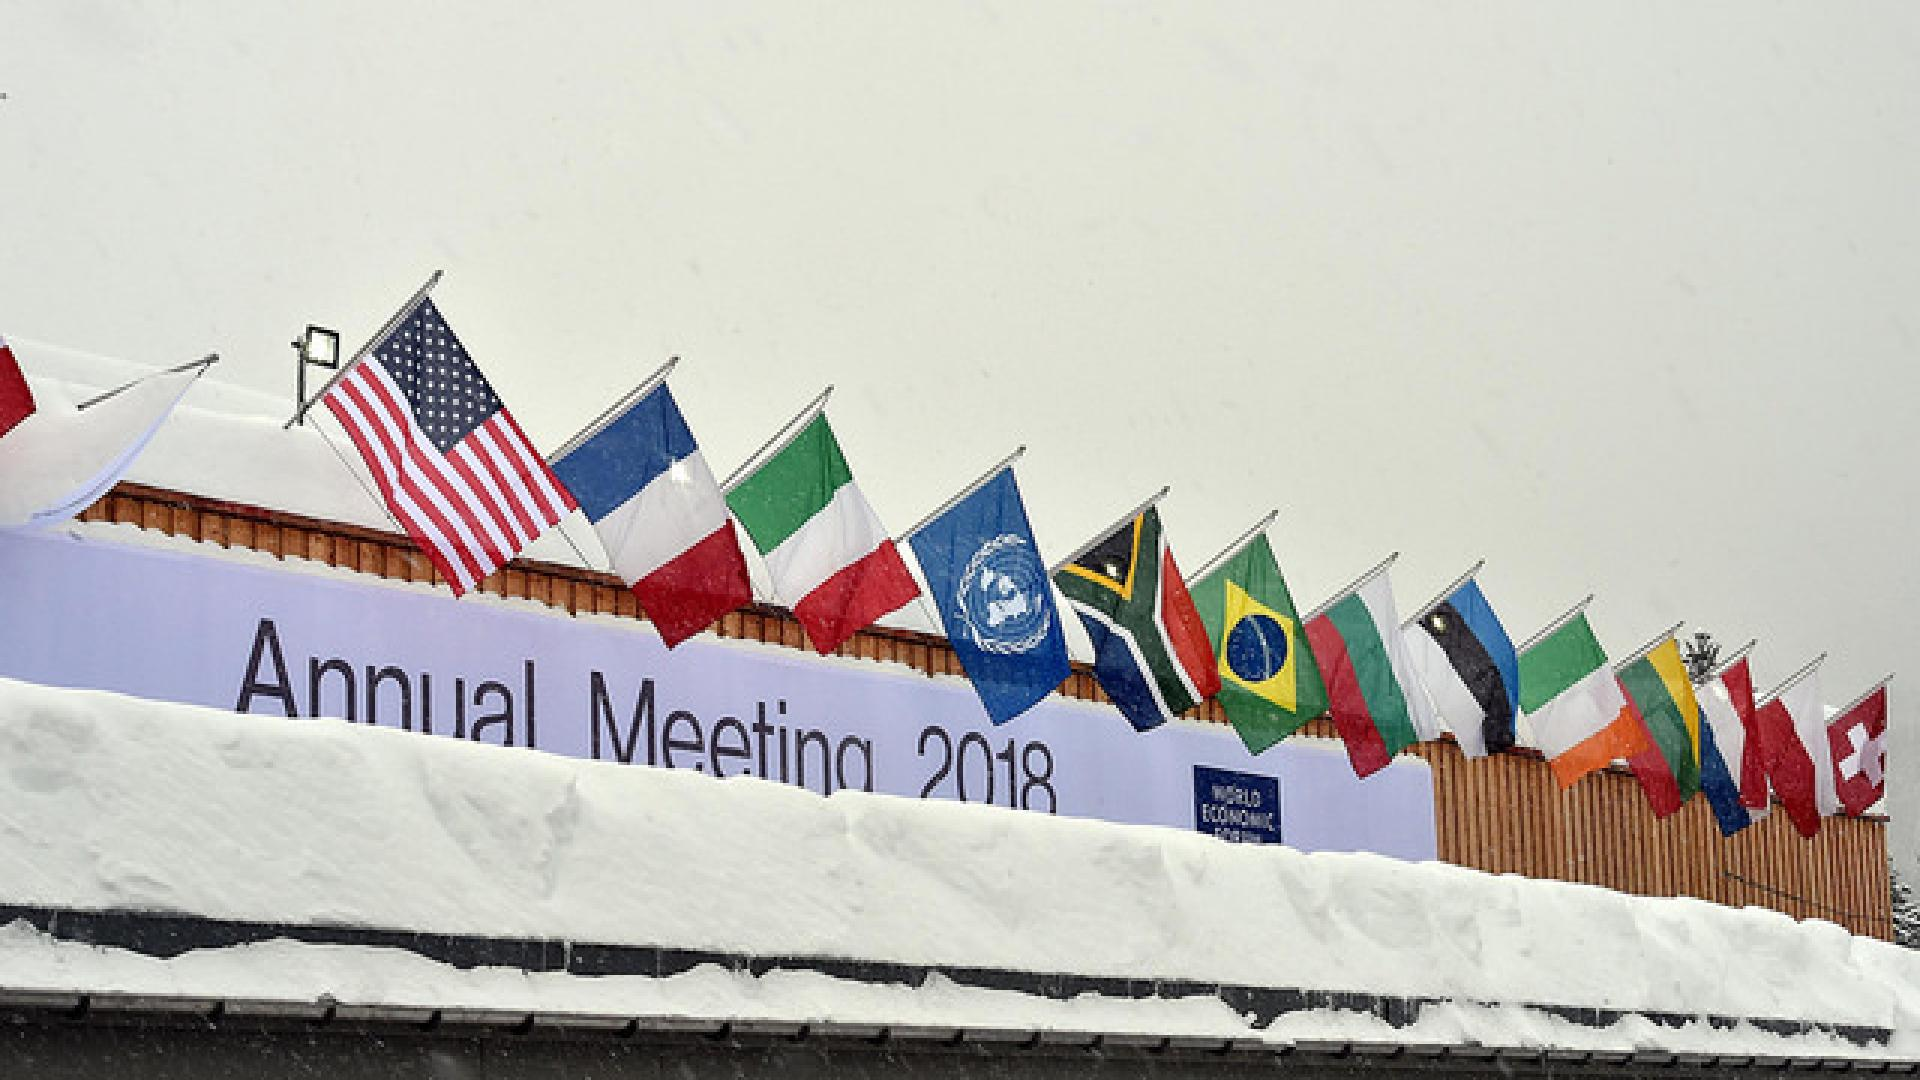 Photos shows World Economic Forum meeting venue in the snow with flags